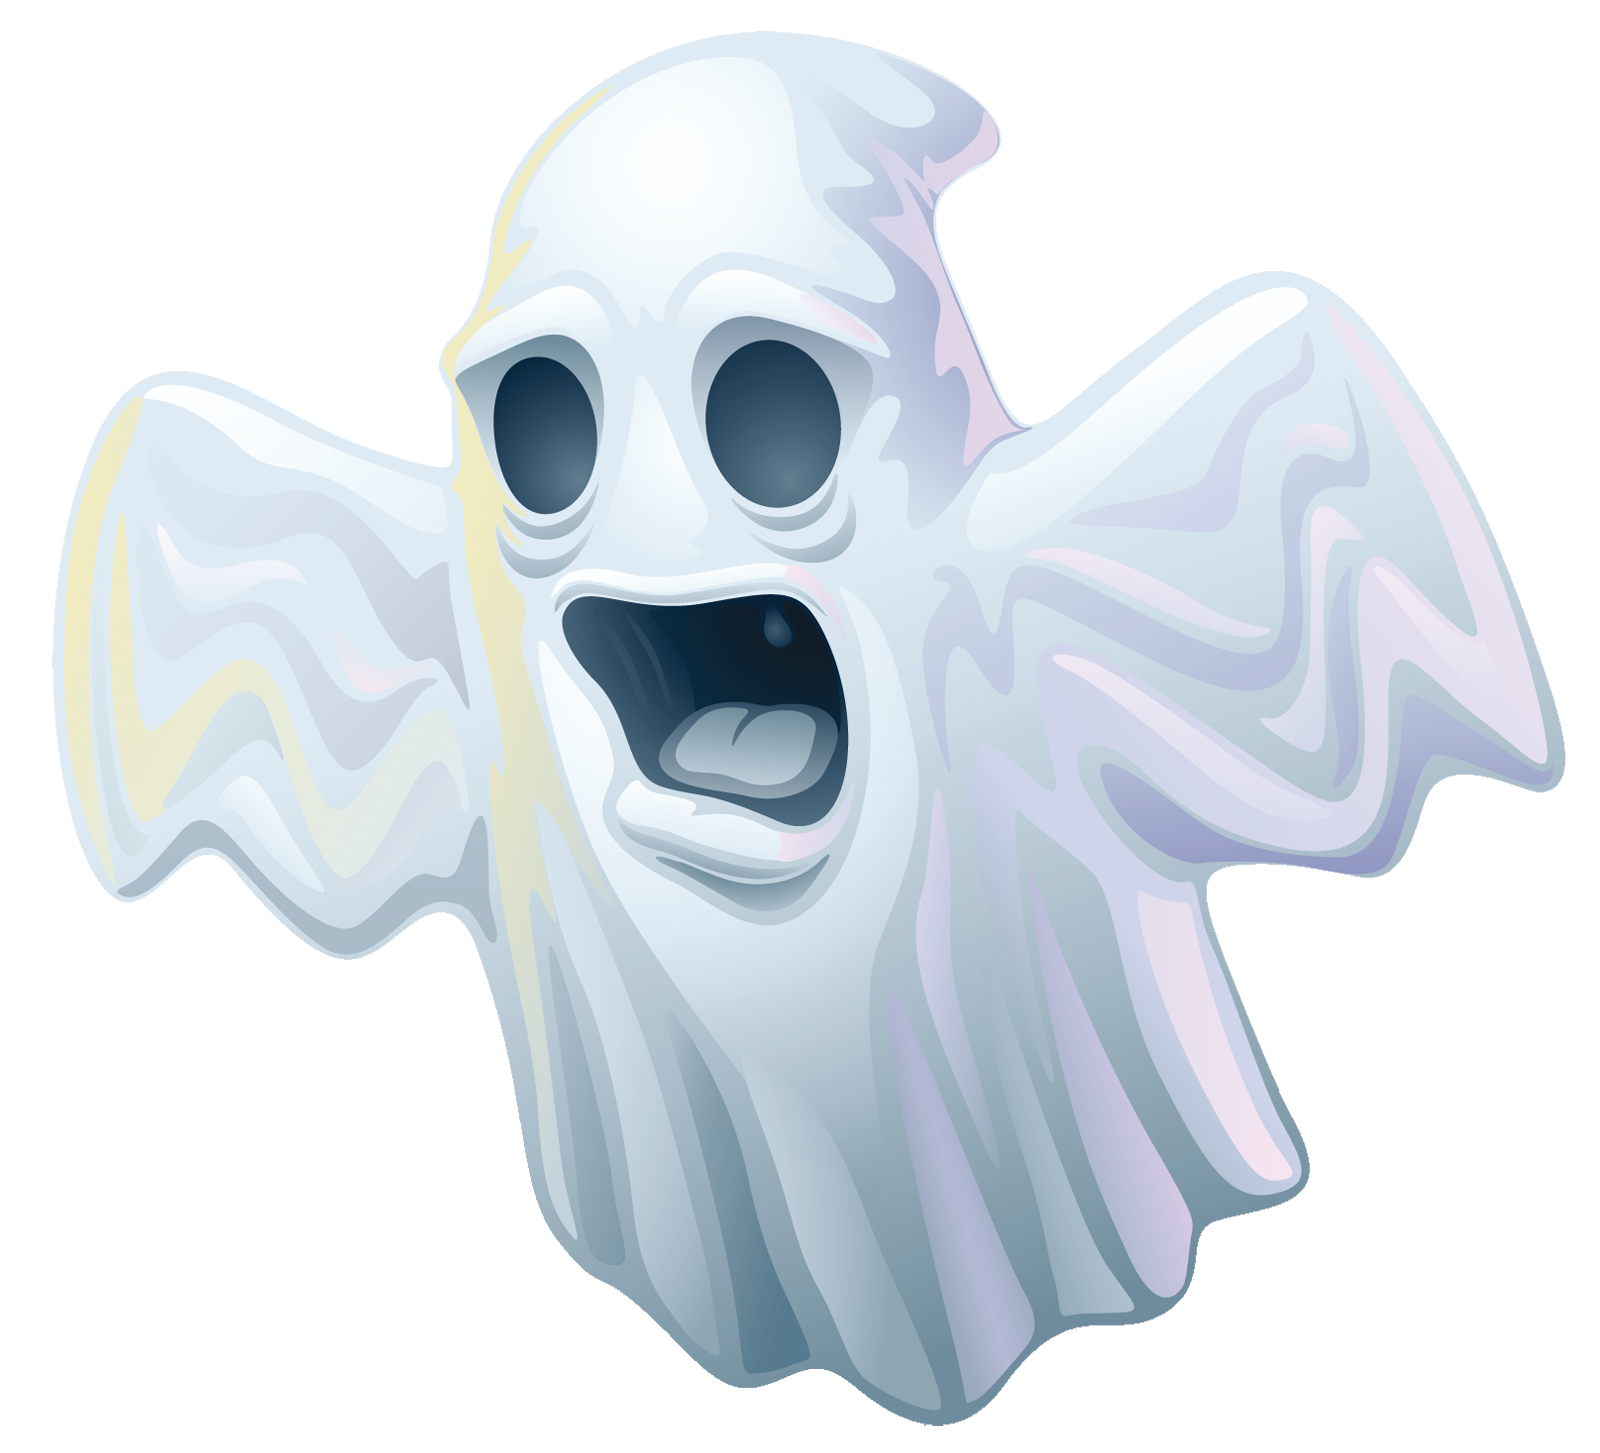 Creepy halloween clipart gallery. Cartoon ghost png graphic freeuse